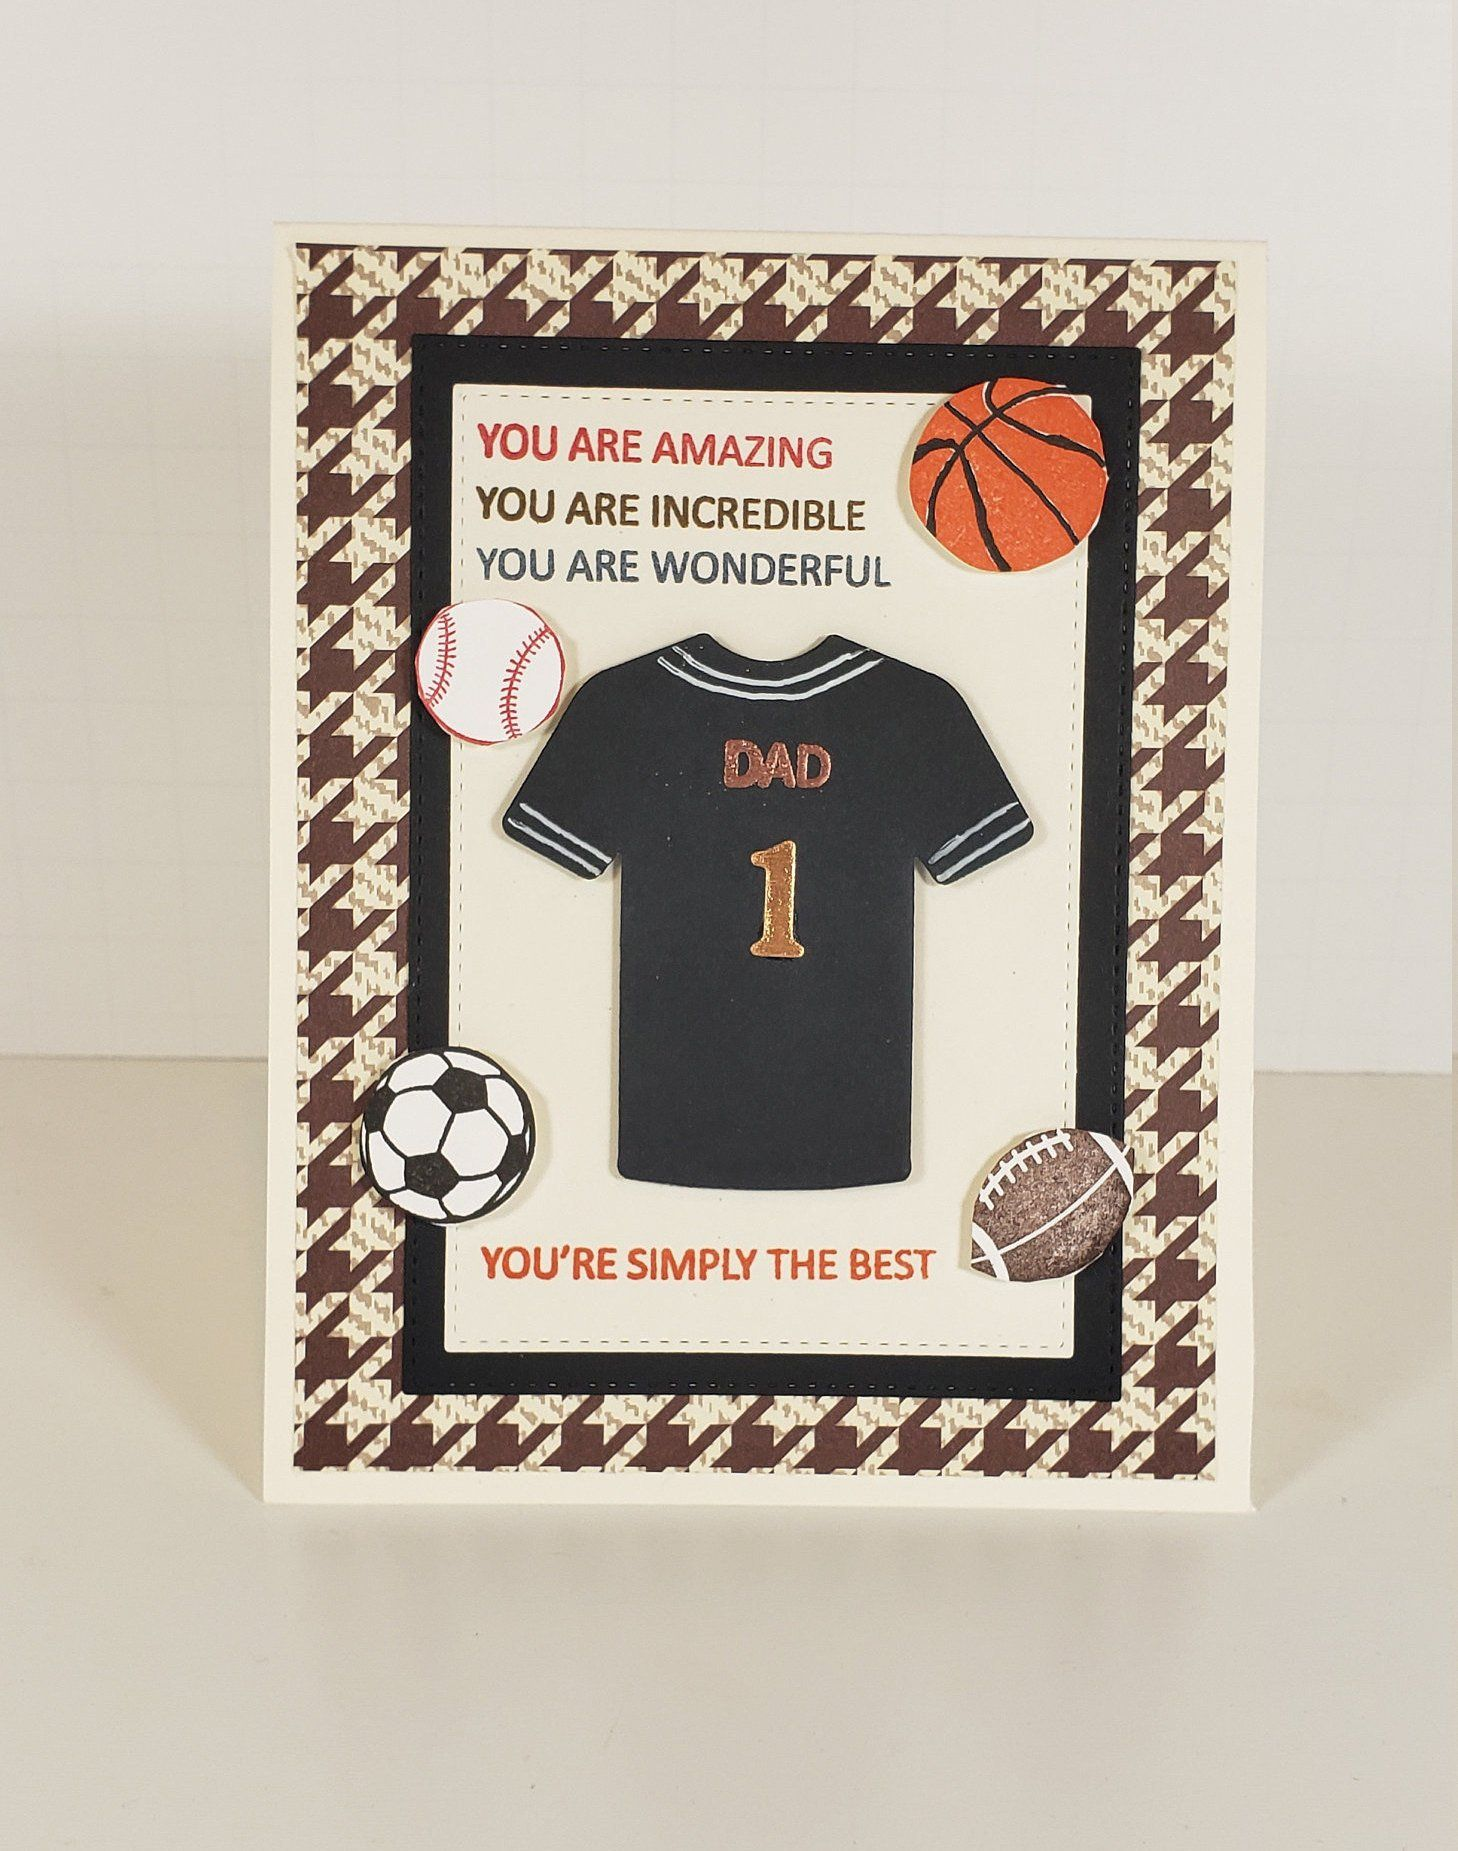 Father S Day Card Sports Themed Father S Day Card Baseball Football Basketball Soccer Sports Theme Handmade Birthday Cards Fathers Day